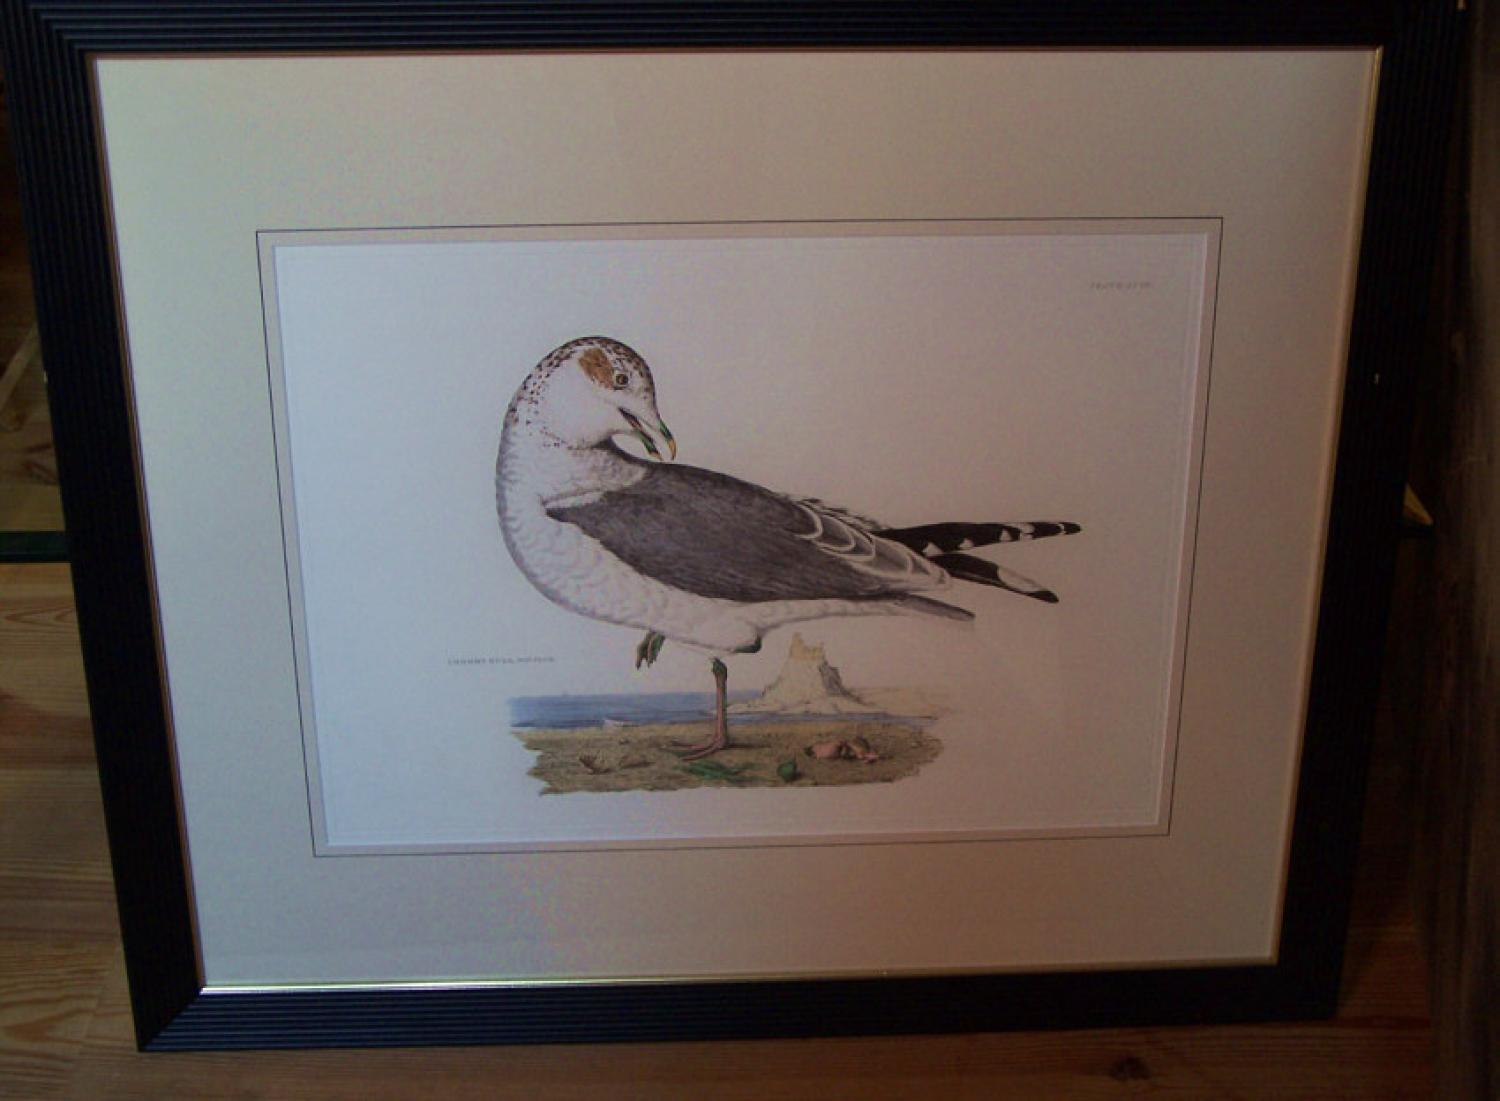 Prideaux John Selby engraving Common Gull in Winter Plumage